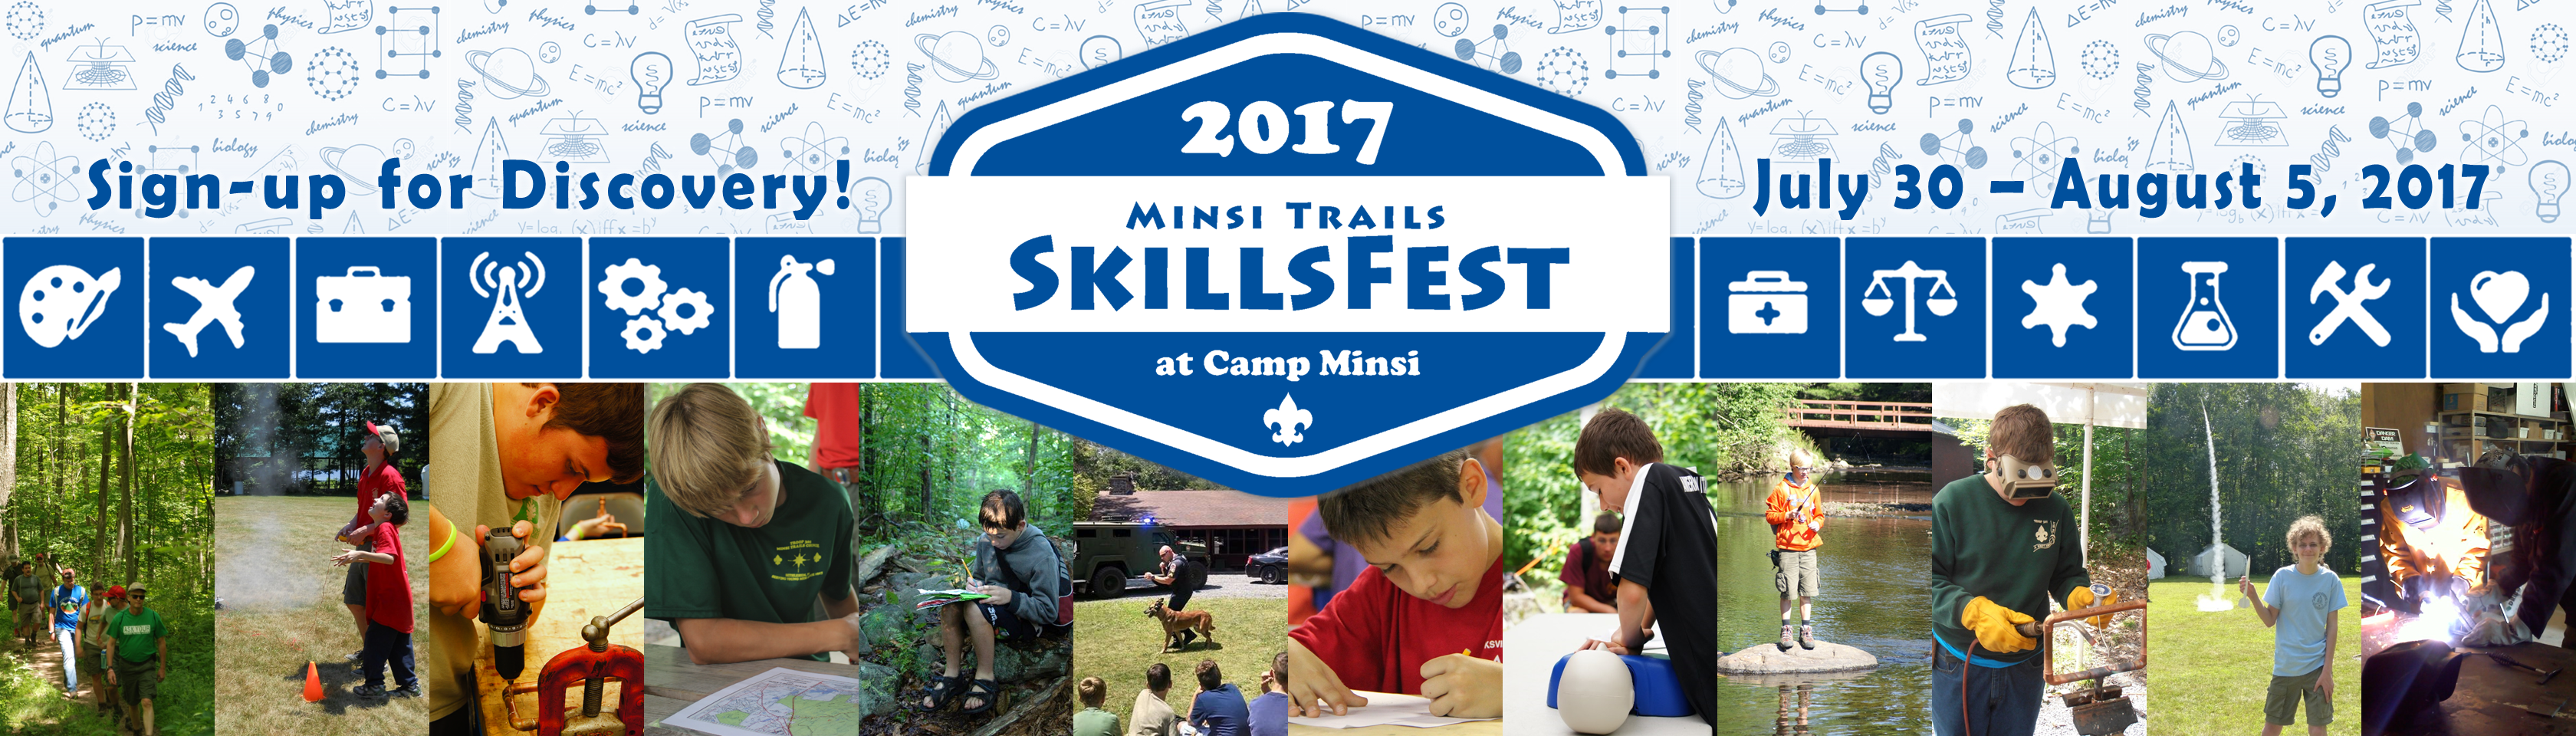 Minsi Trails Council SkillsFest